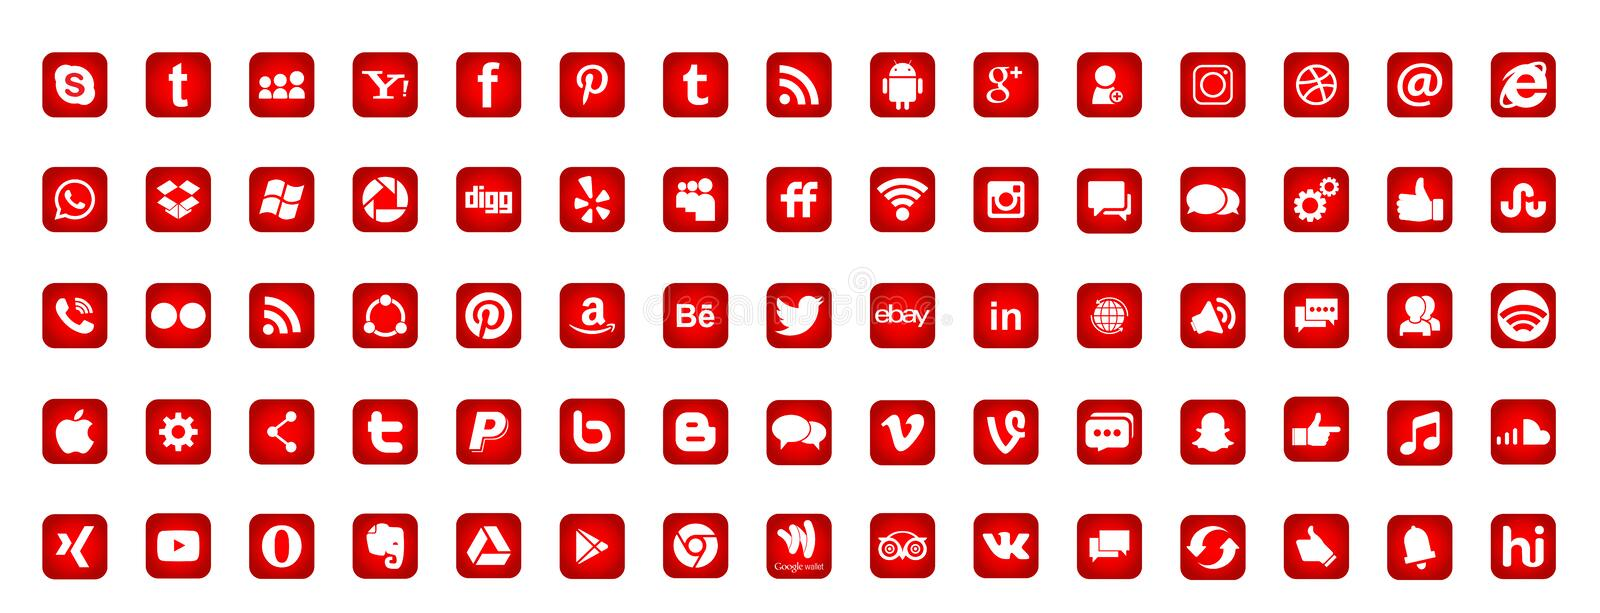 Placez des icônes sociales populaires Instagram Facebook Twitter Youtube WhatsApp LinkedIn Pinterest Blogd de logos de médias sur illustration de vecteur